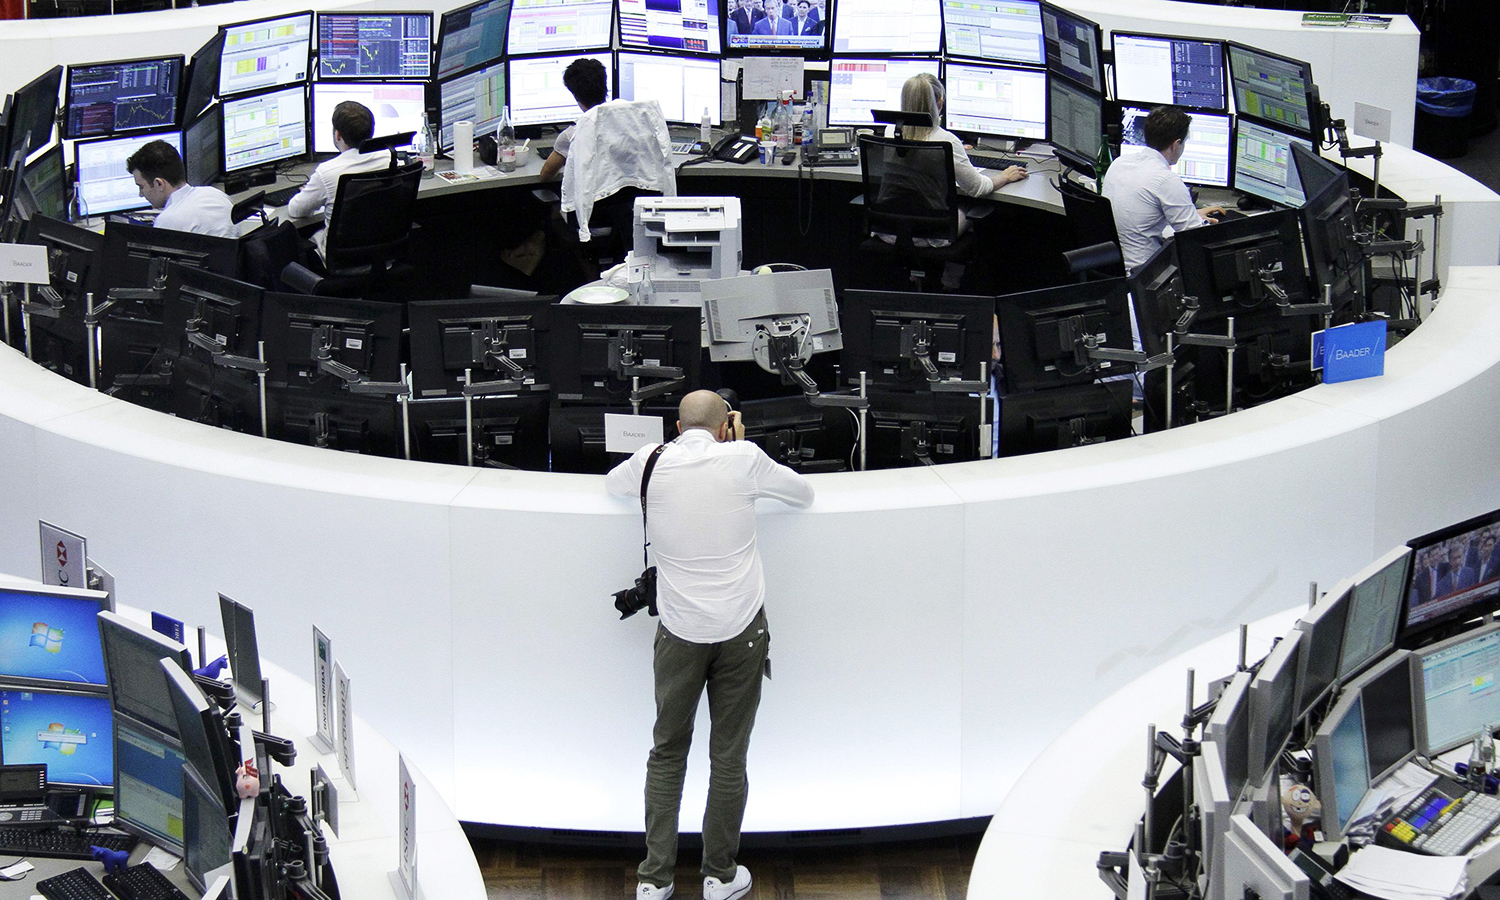 A photographer takes pictures of traders before the opening of the German stock exchange in front of the empty DAX board, at the stock exchange in Frankfurt, Germany, June 24, 2016 after Britain voted to leave the European Union in the EU BREXIT referendum. REUTERS/Staff/Remote